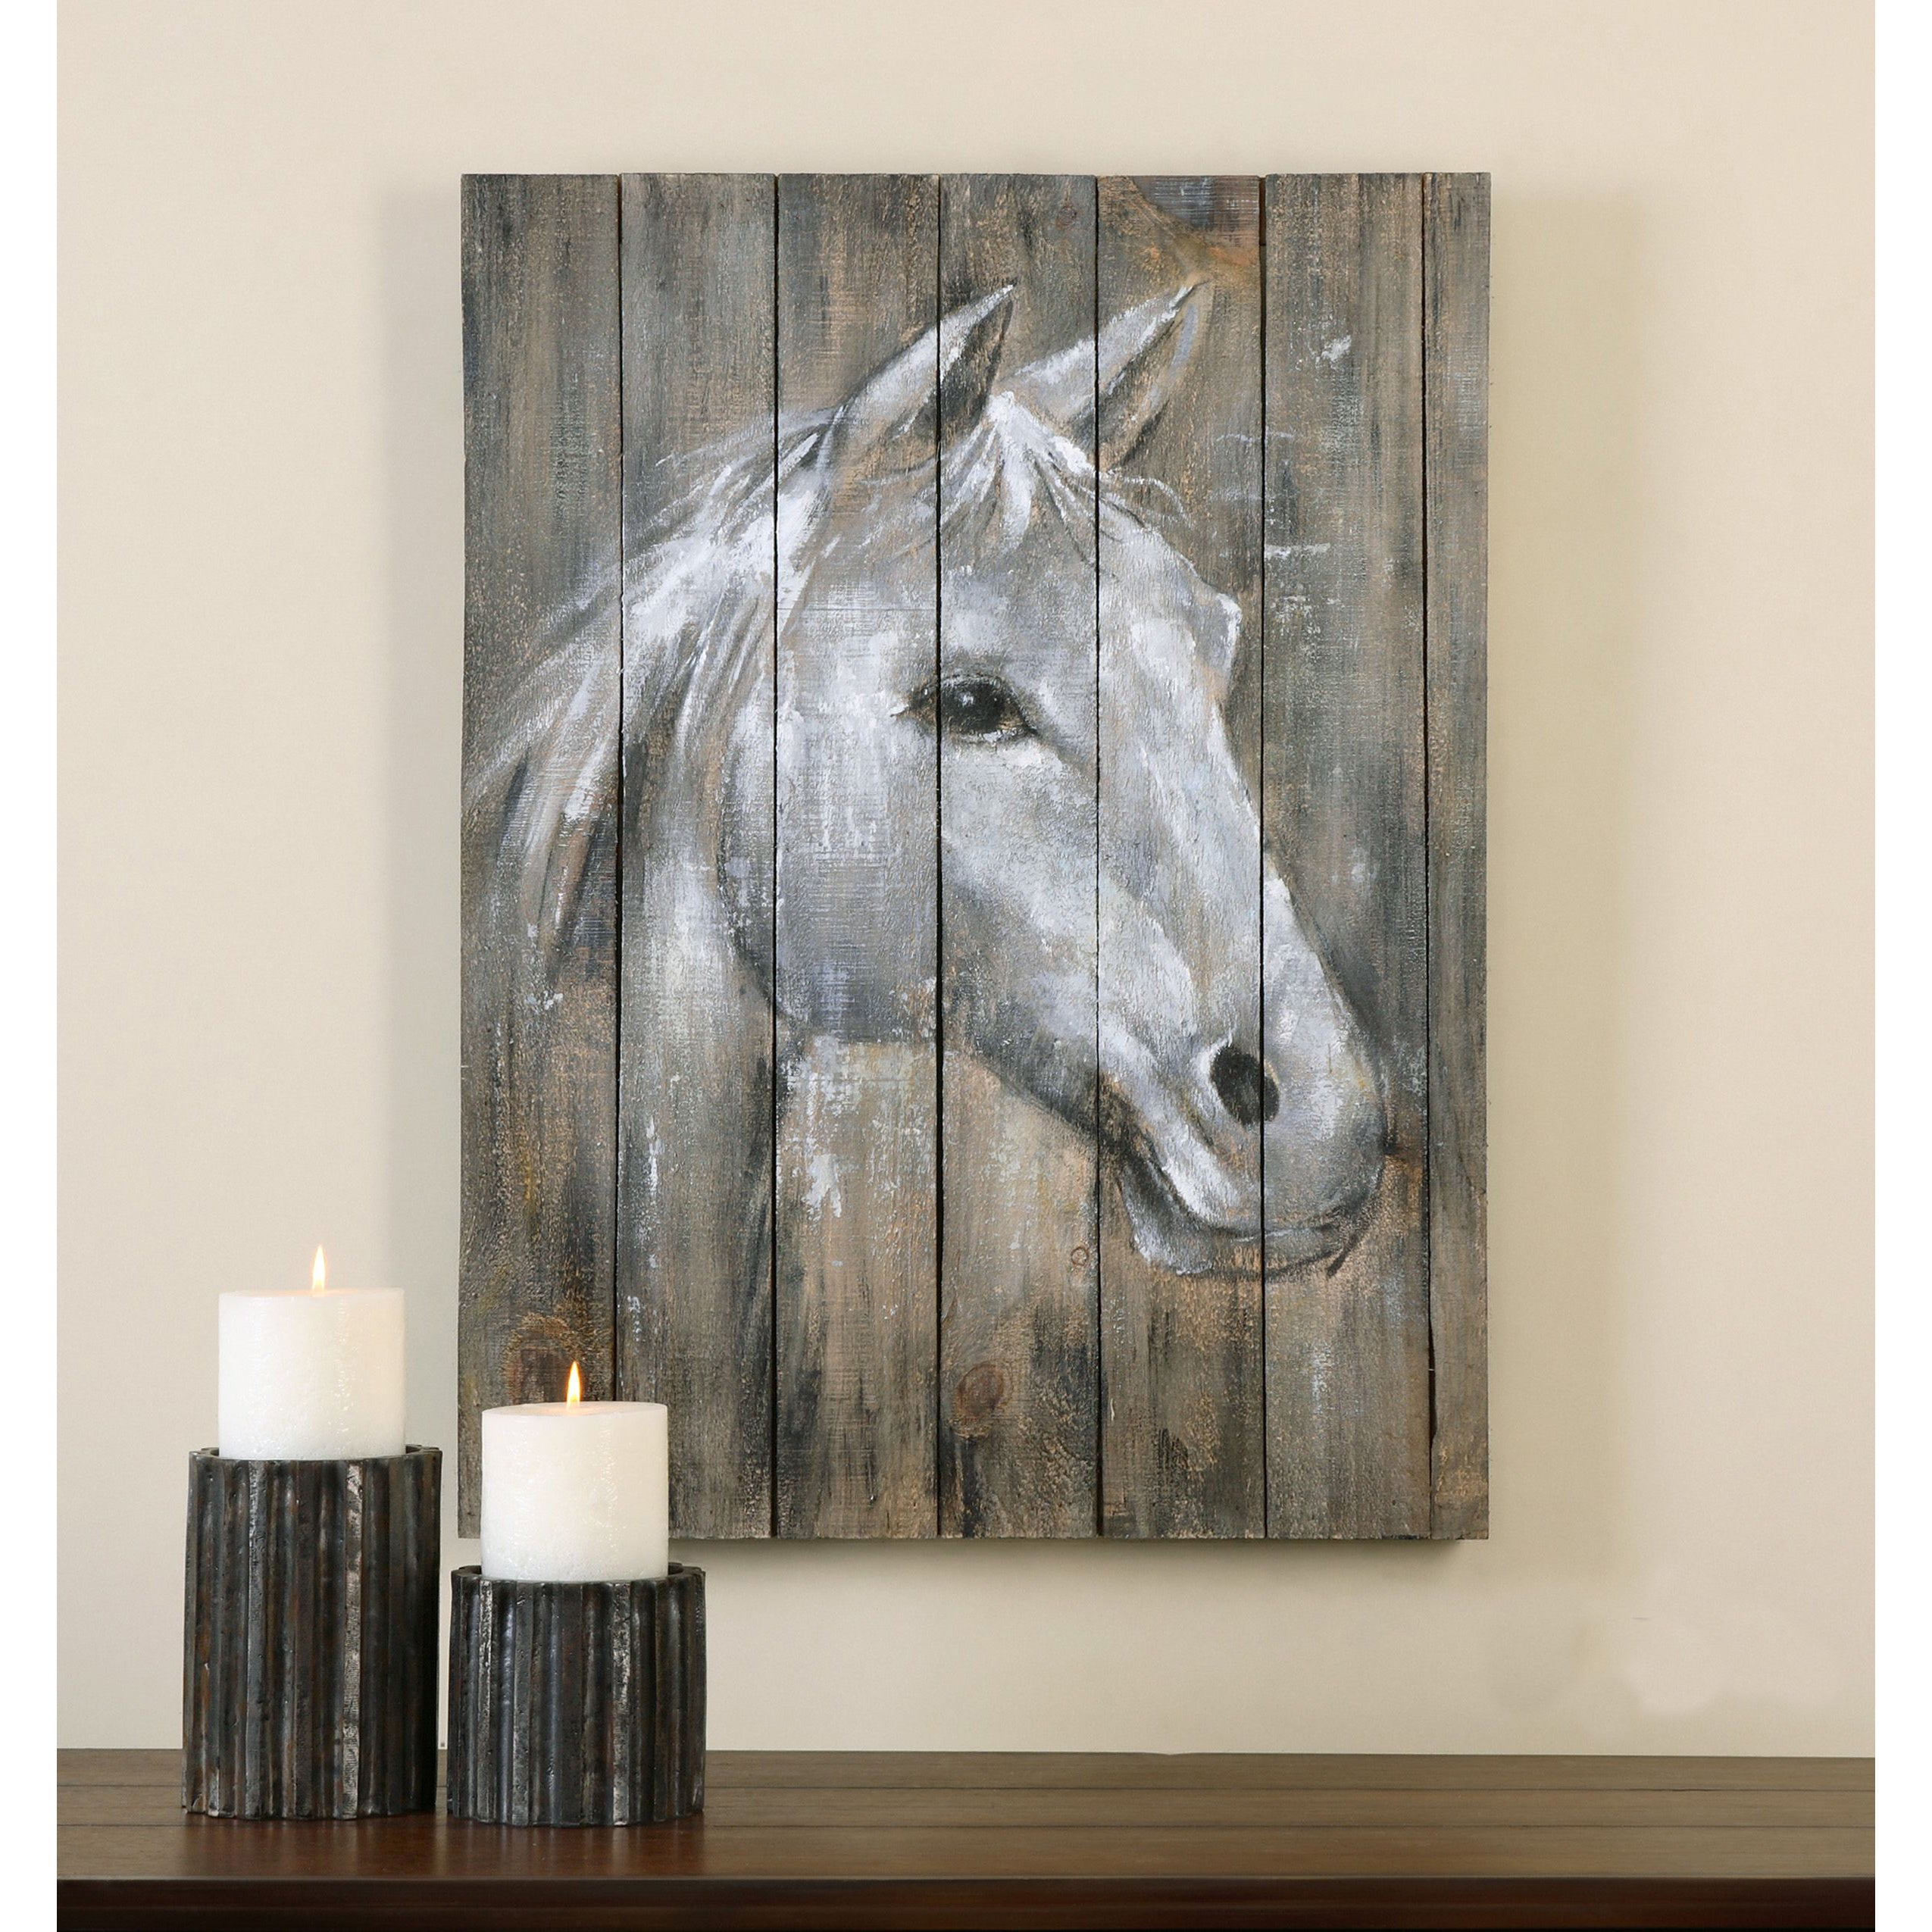 Shop Uttermost Grace Feyock u0027Dreamhorseu0027 Hand Painted Wood Wall Art - Free Shipping Today - Overstock.com - 9729701 & Shop Uttermost Grace Feyock u0027Dreamhorseu0027 Hand Painted Wood Wall Art ...